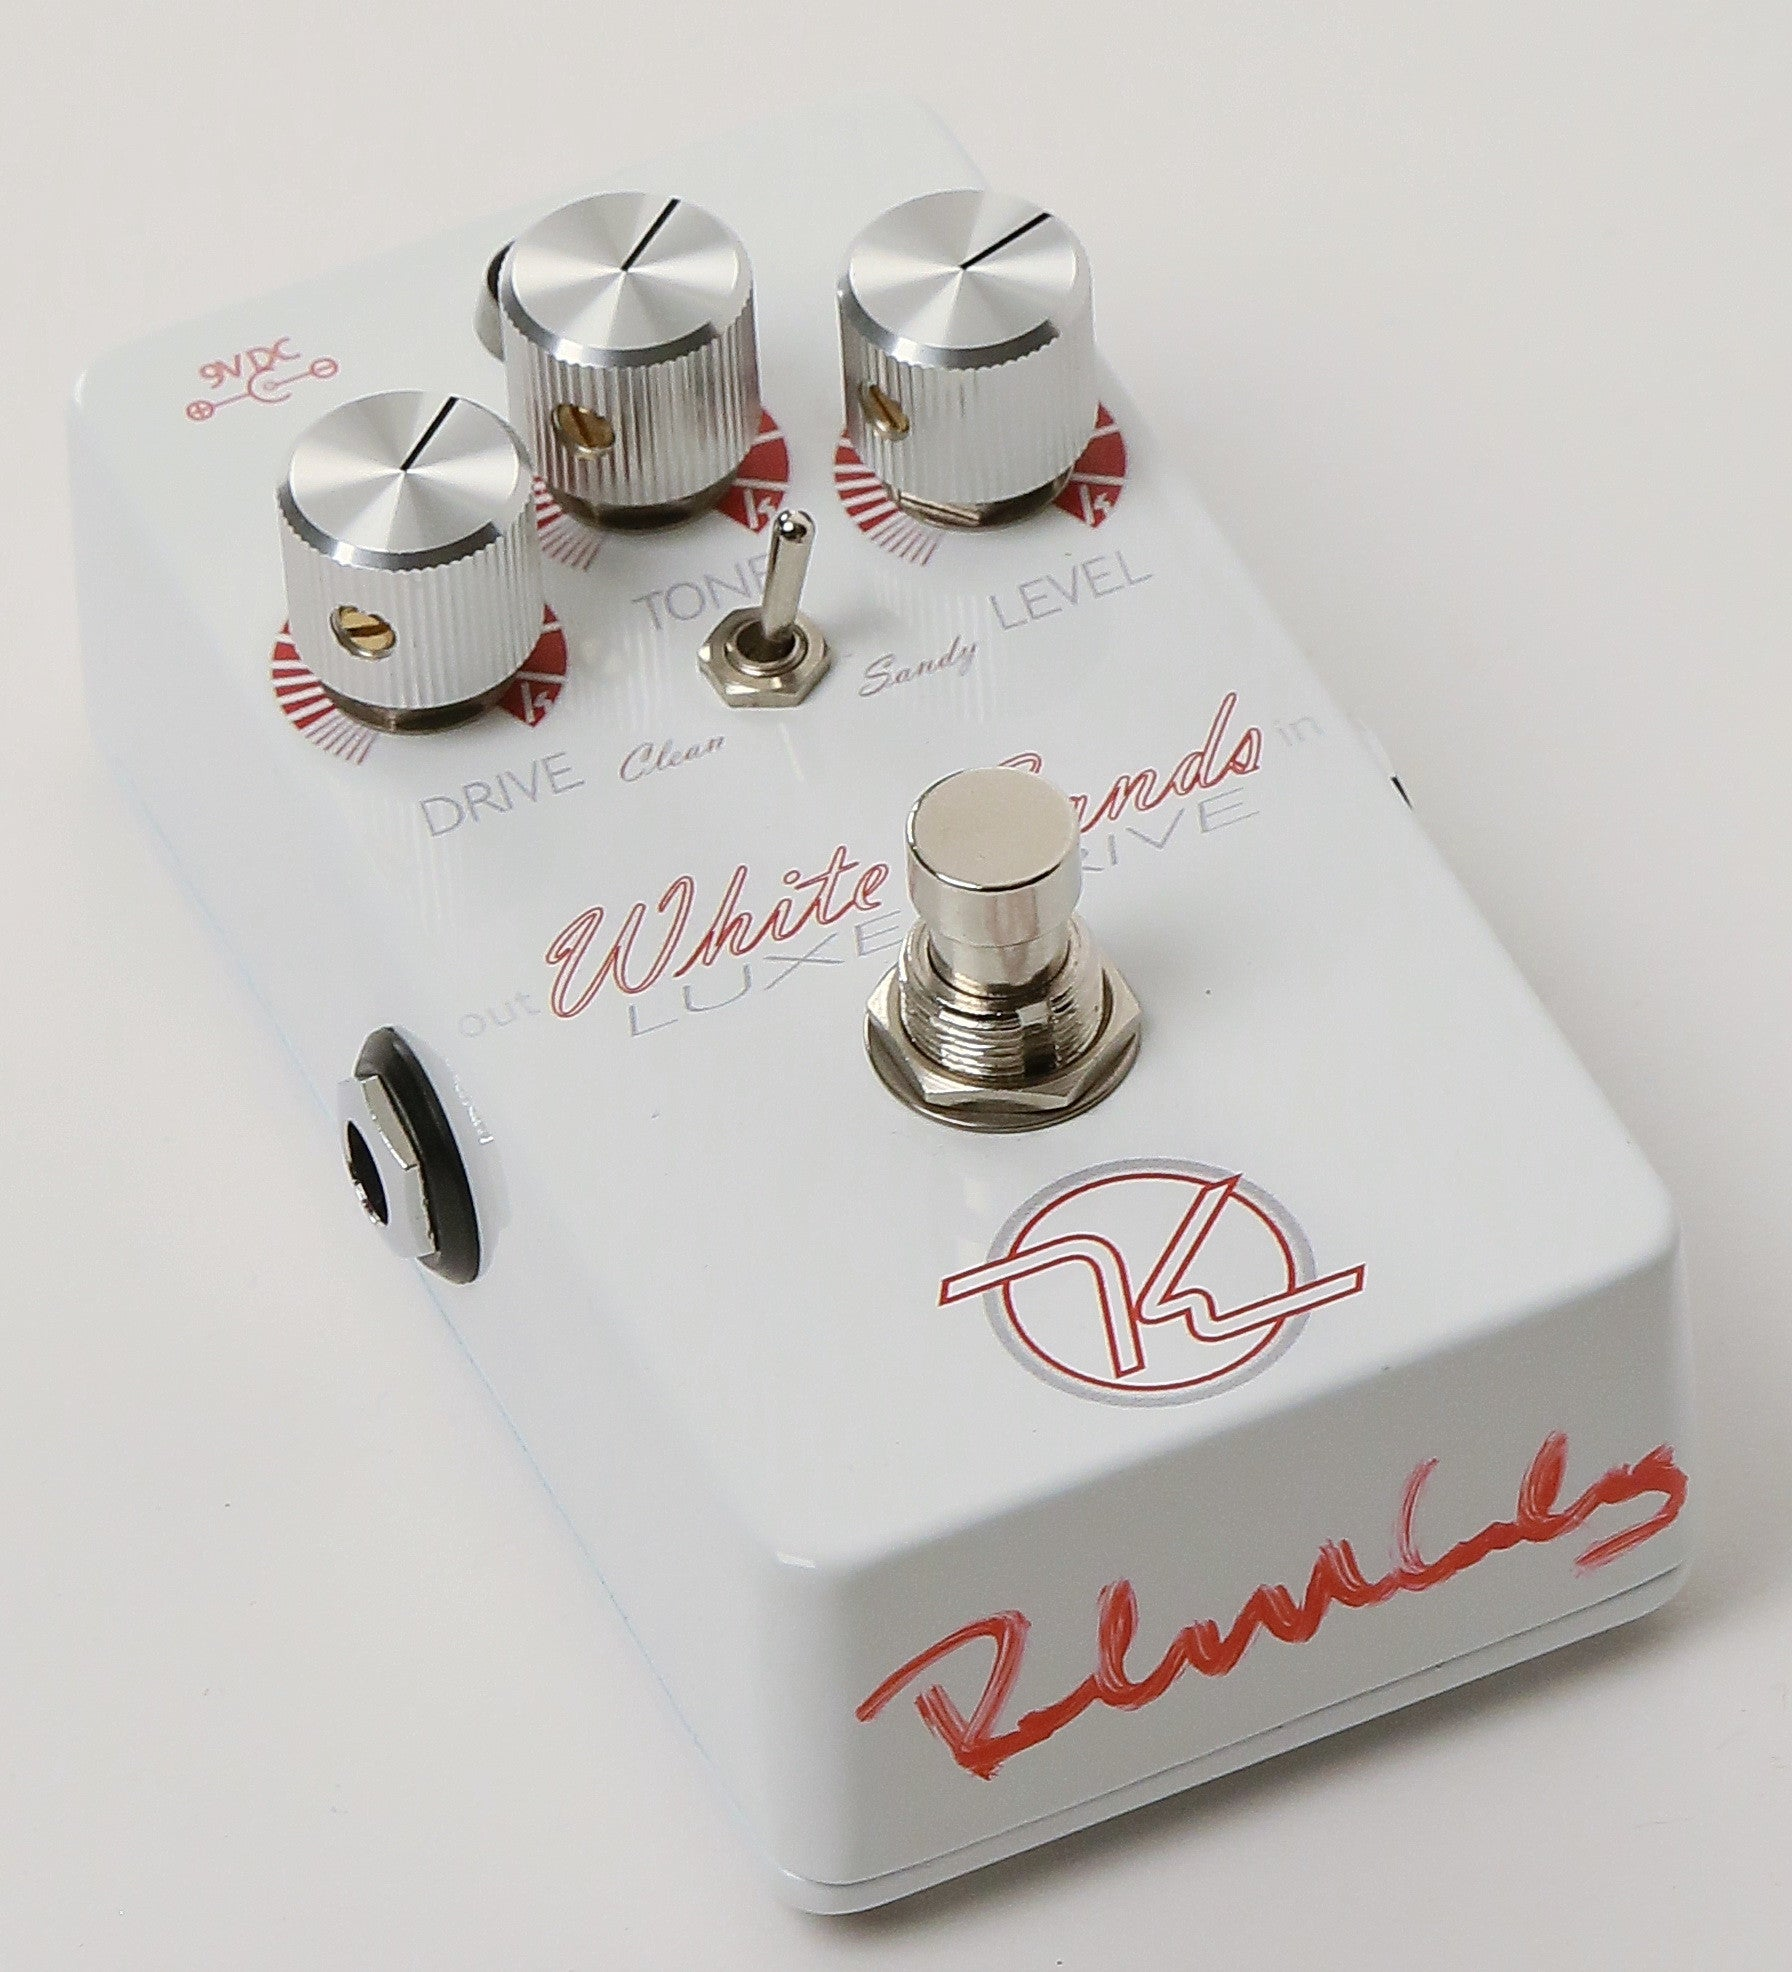 Keeley White Sands Overdrive - Scratch & Dent